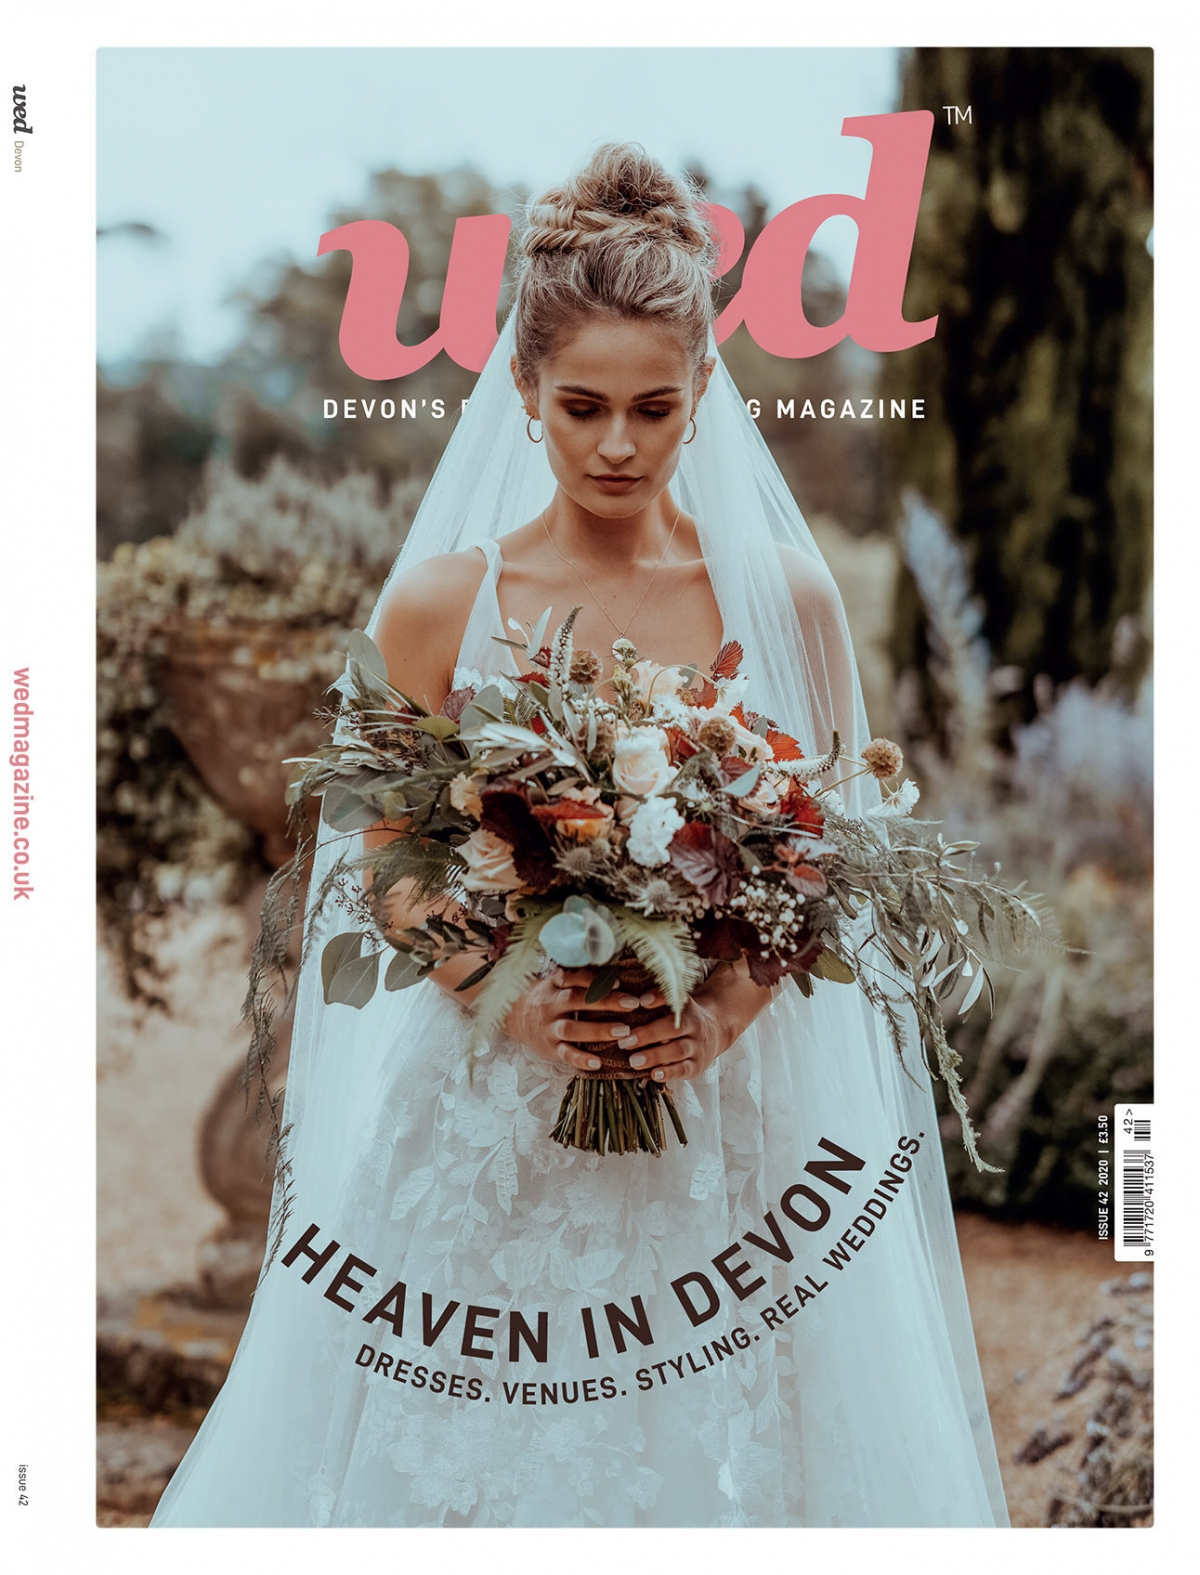 Order a print copy of Devon Wed Magazine - Issue 42